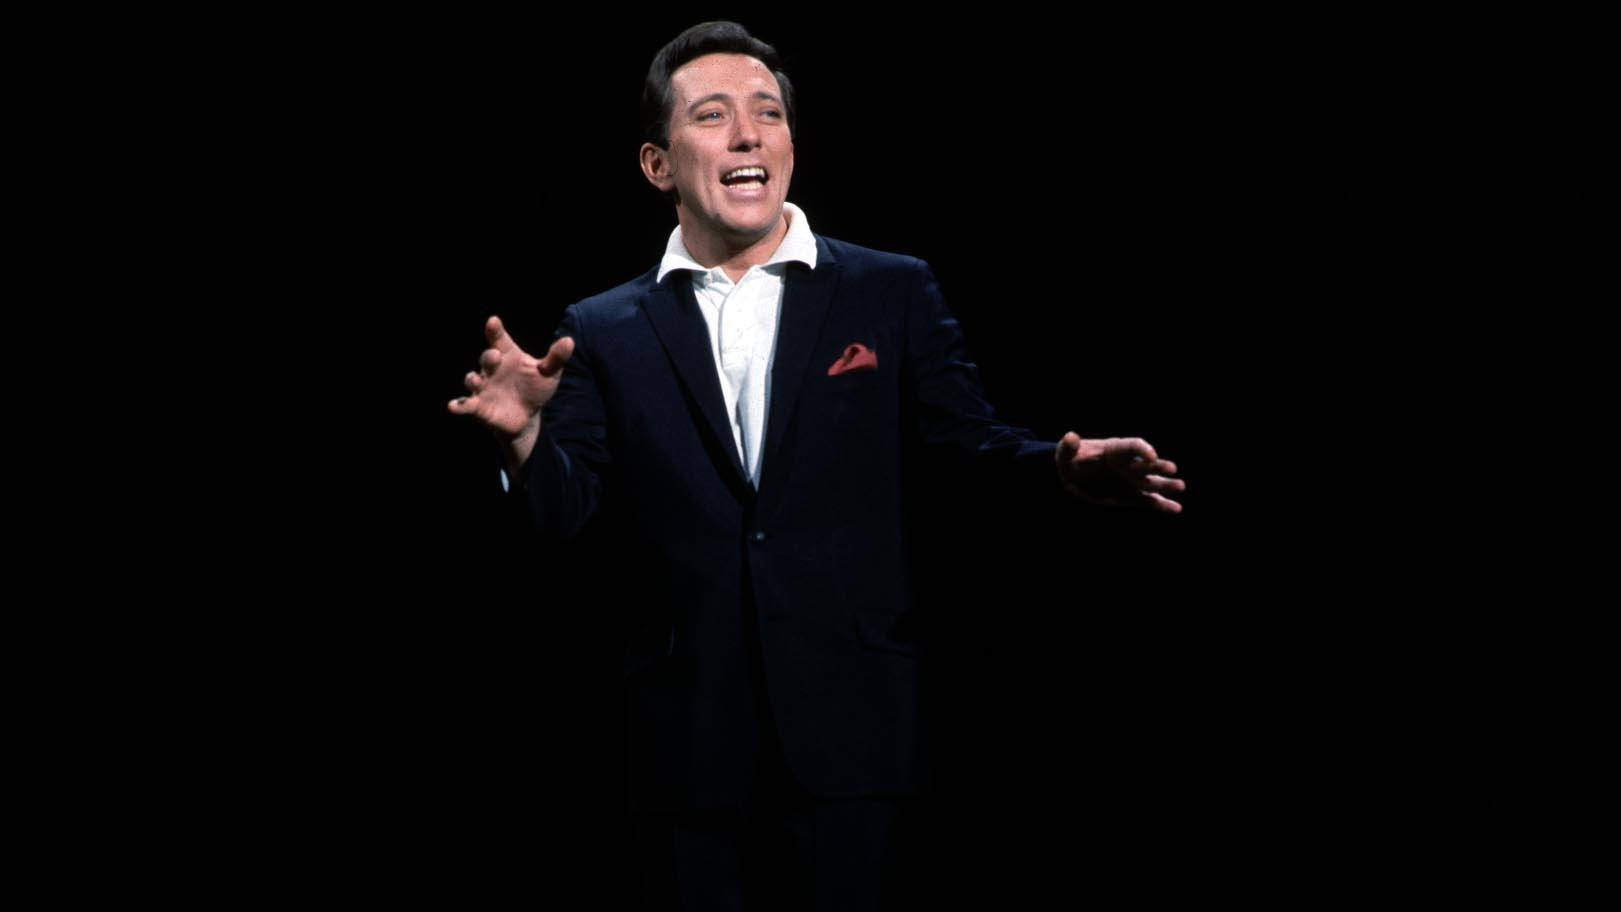 A man in black jacket and white shirt spreads his arms as he sings. The entire background is black.